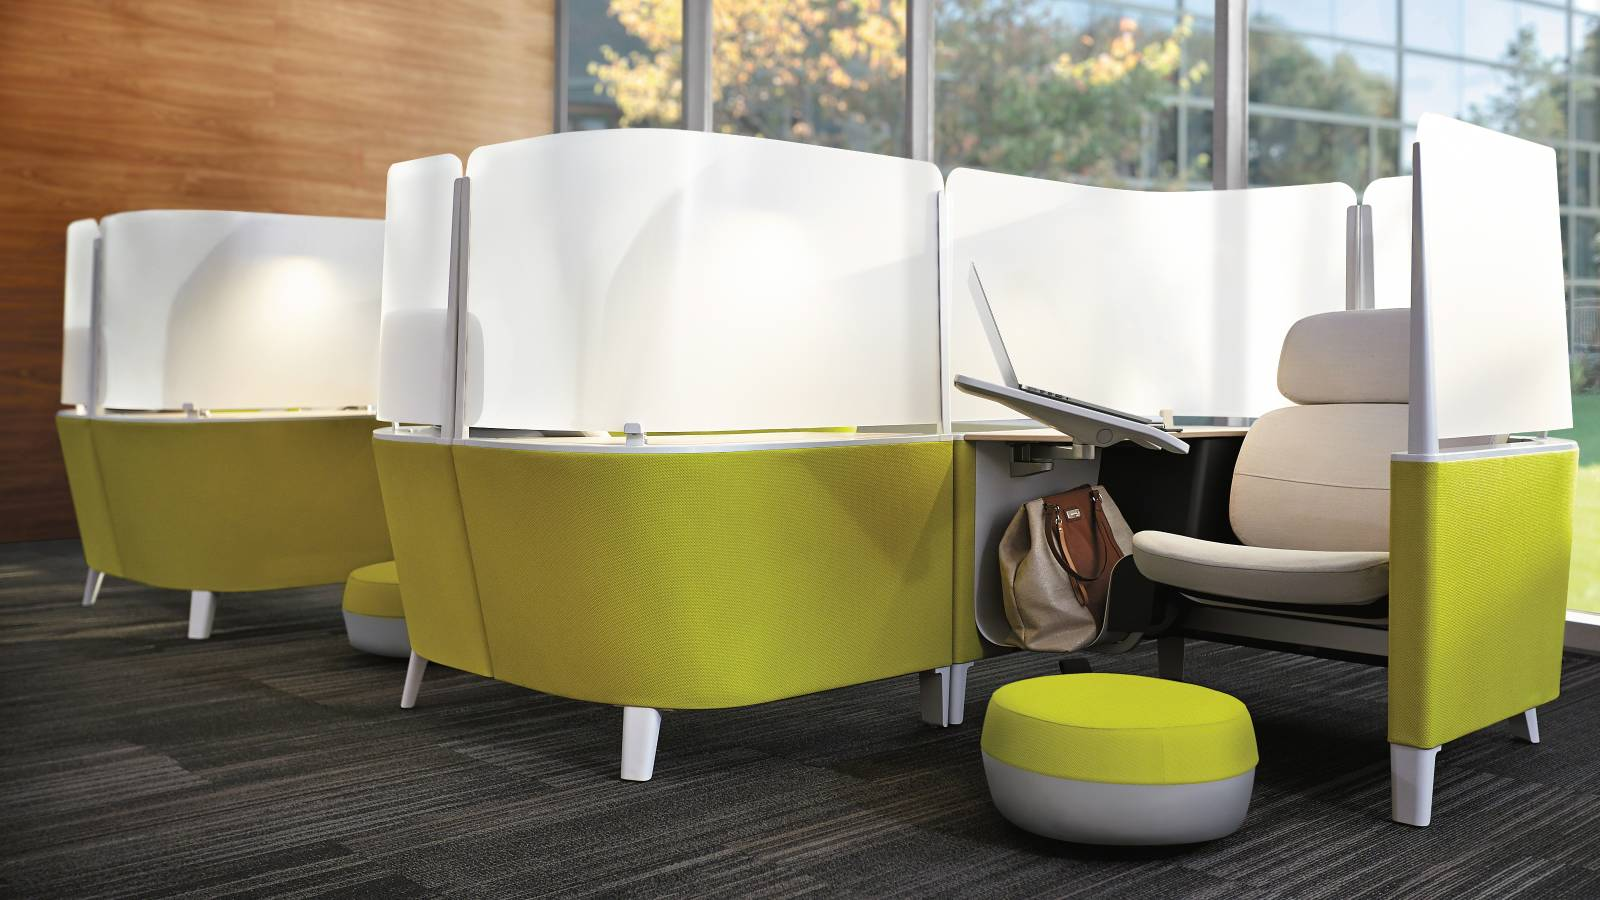 Custom Workplace Designs Promote Employee Wellbeing